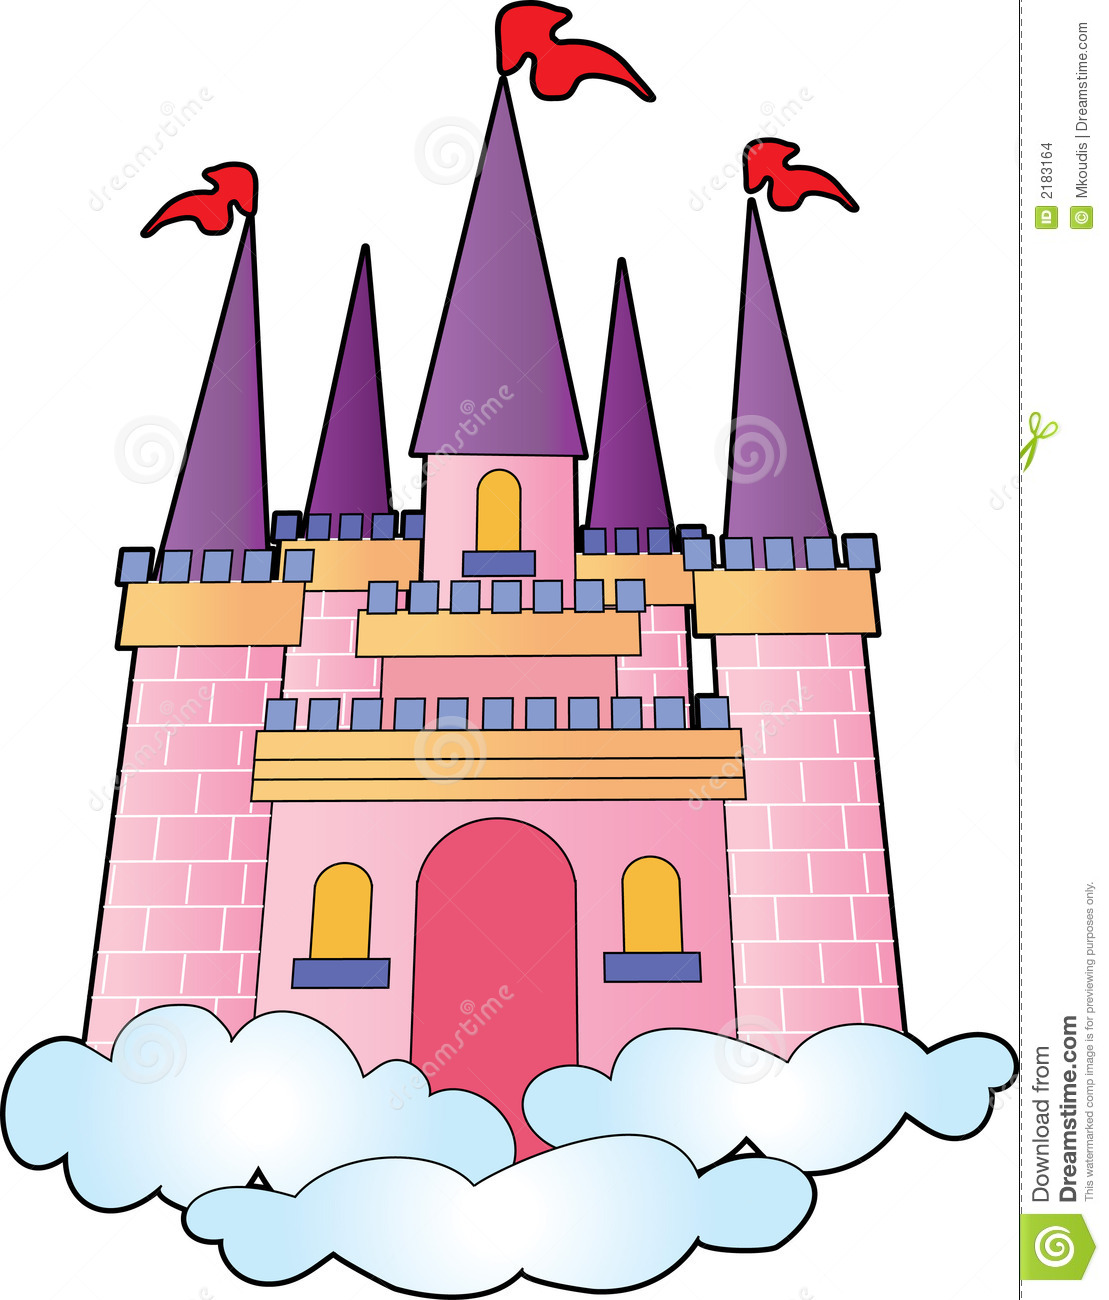 Clipart princess and castle scene for kids jpg freeuse stock Cartoon Castle Picture | Free download best Cartoon Castle Picture ... jpg freeuse stock